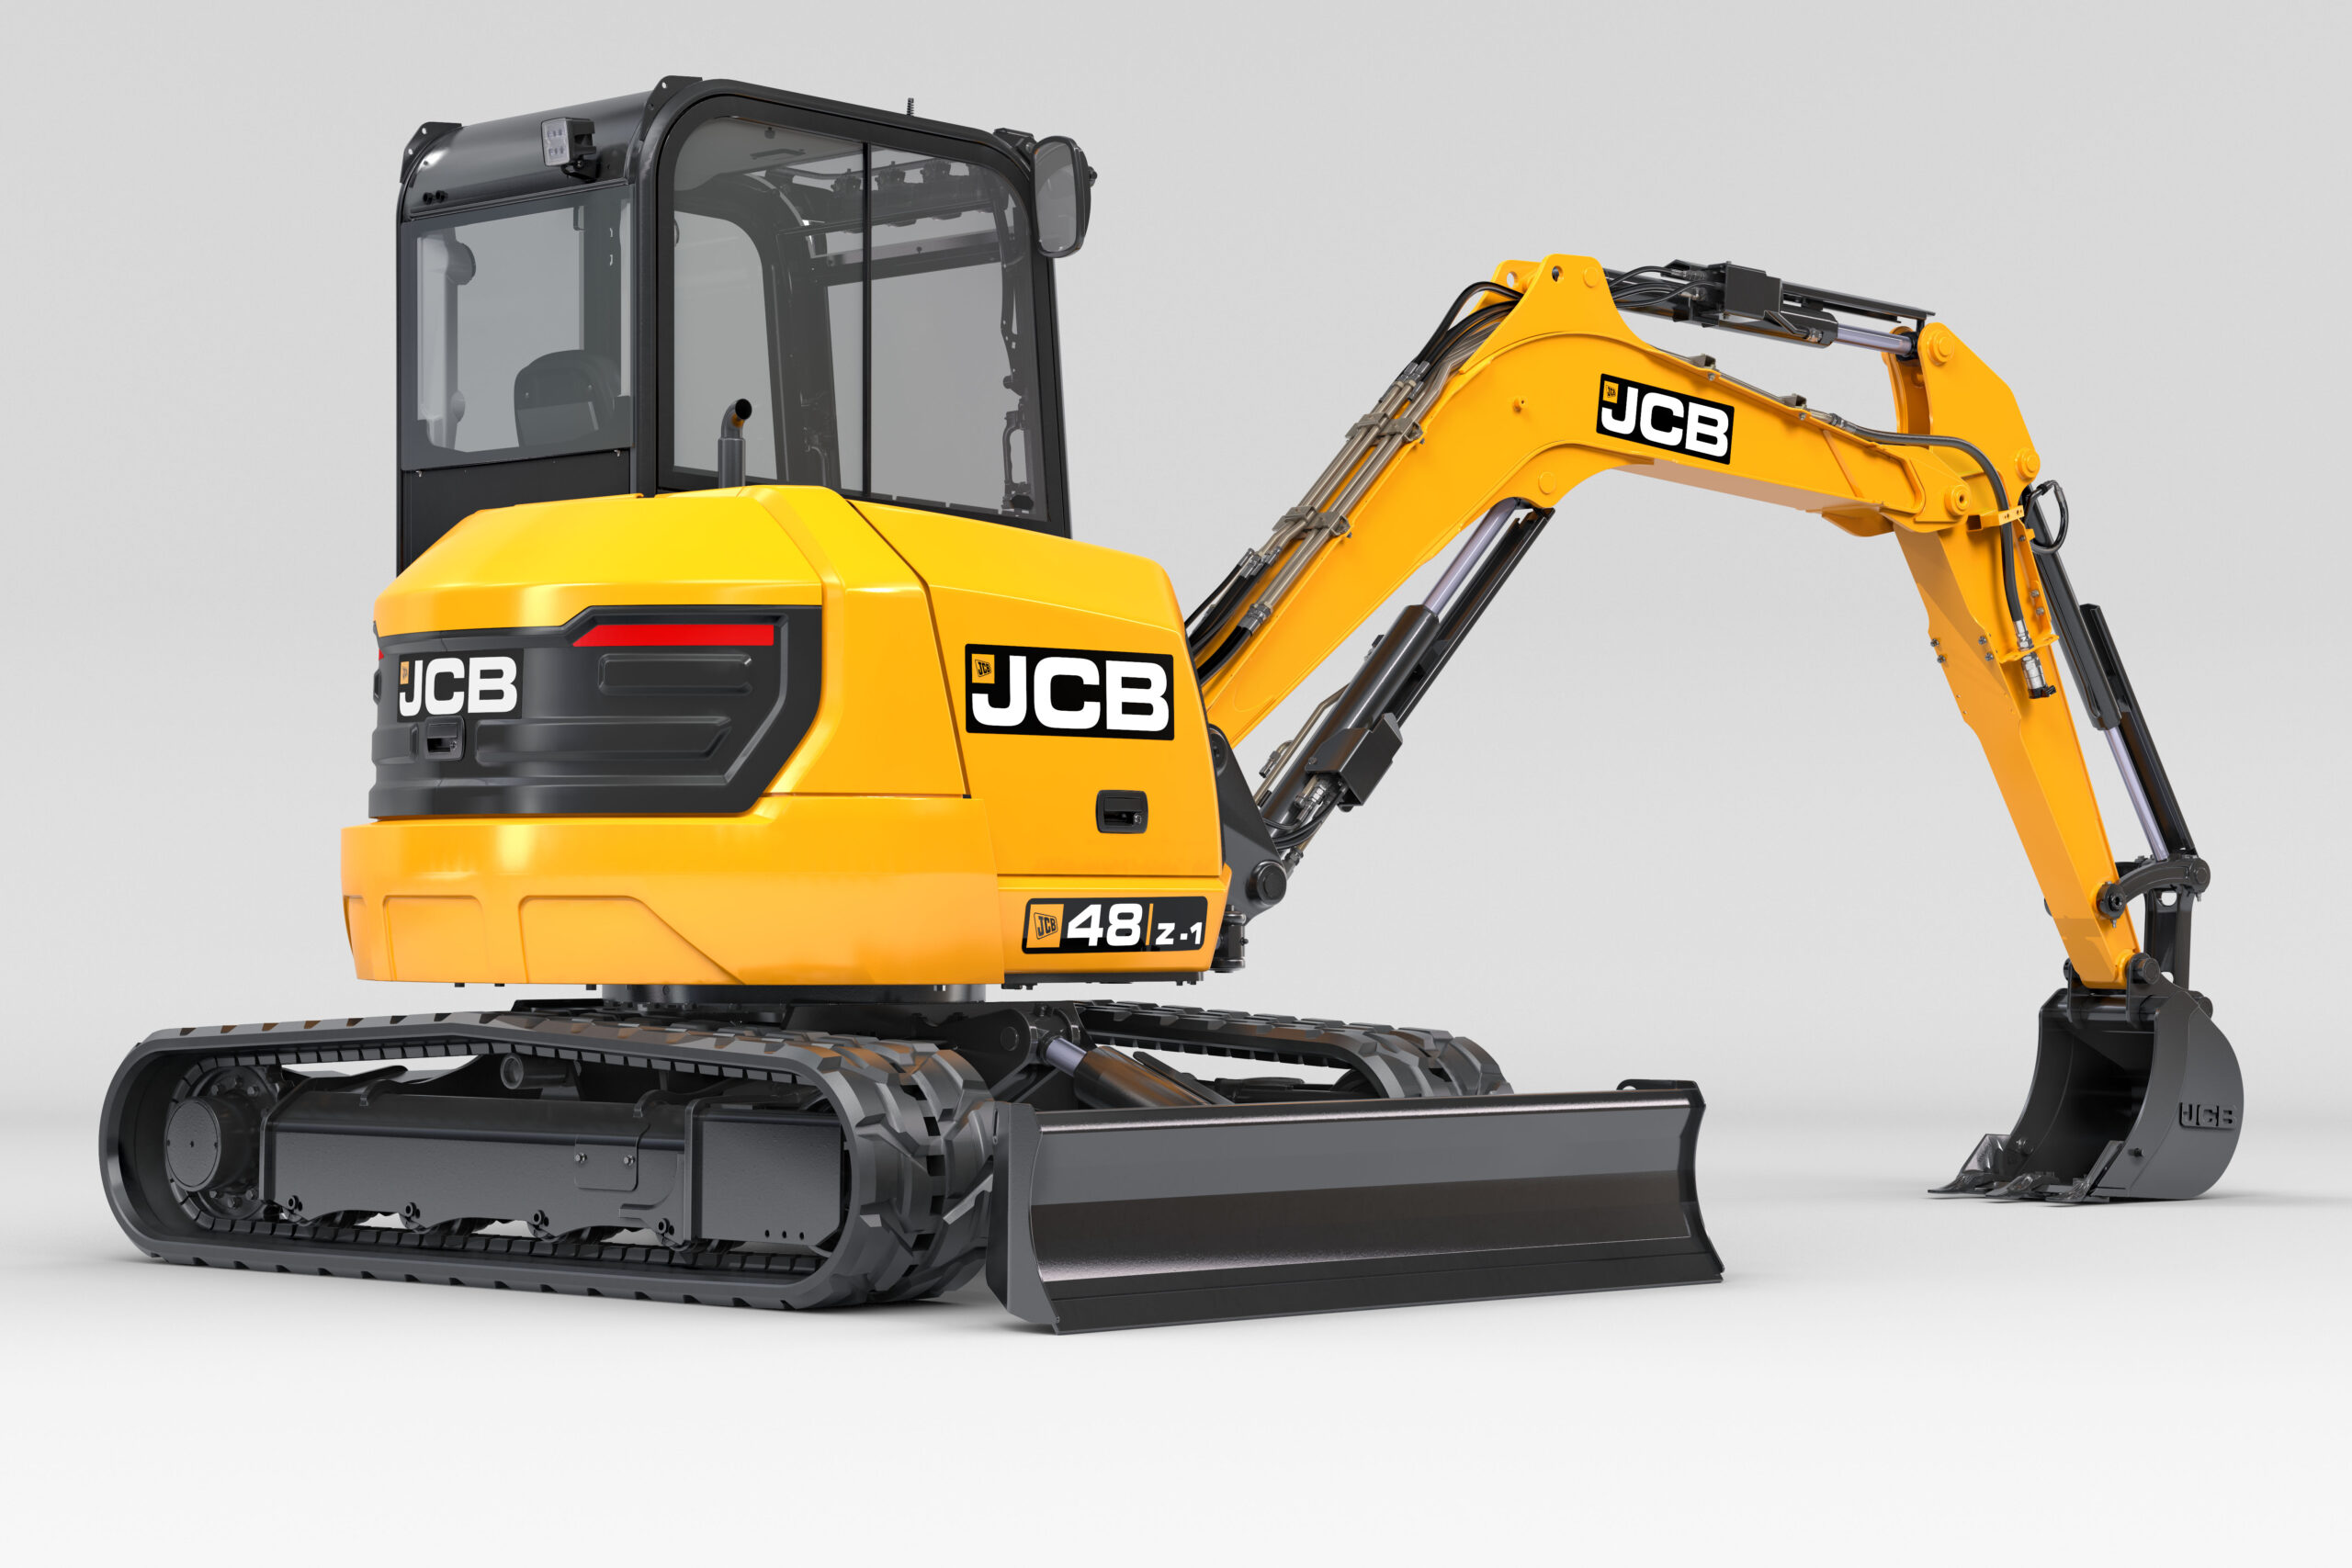 Choosing the right Mini excavators for the project